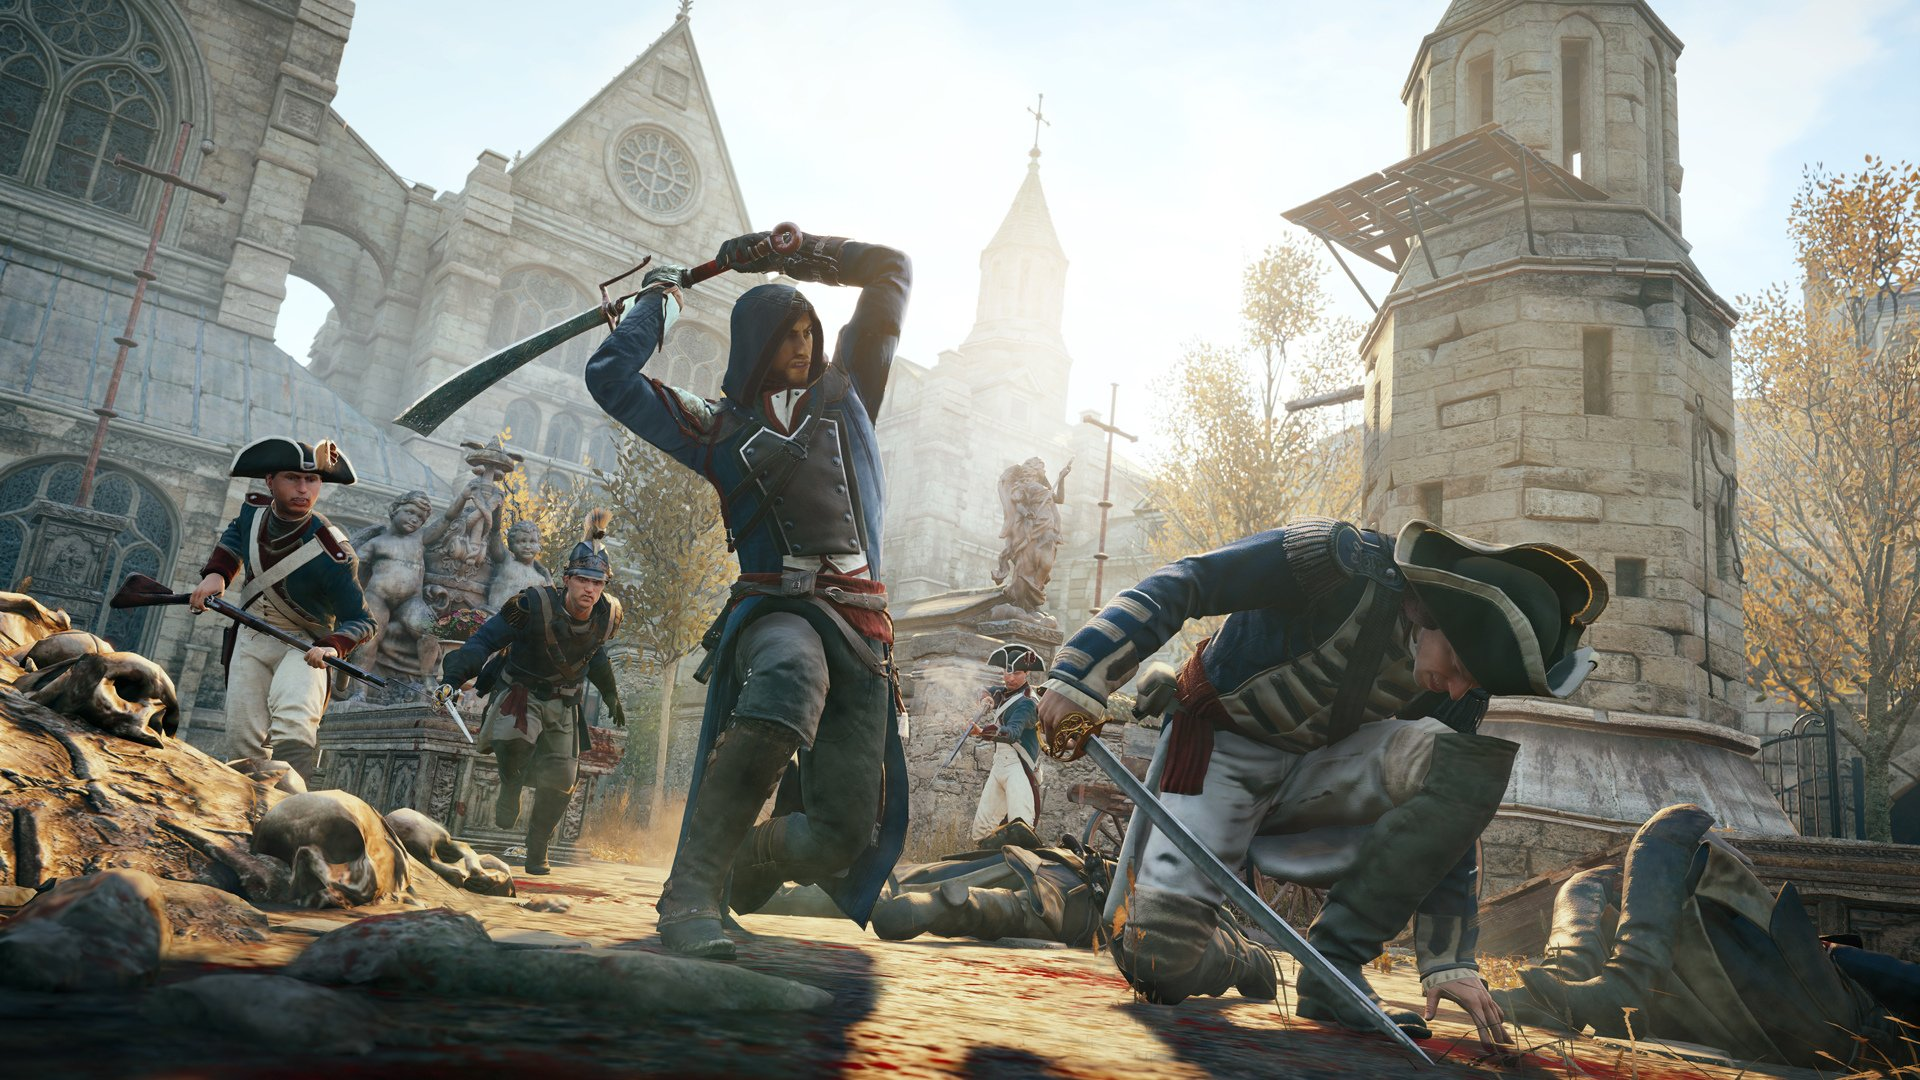 Análisis de Assassin's Creed Unity para PS4 - 3DJuegos